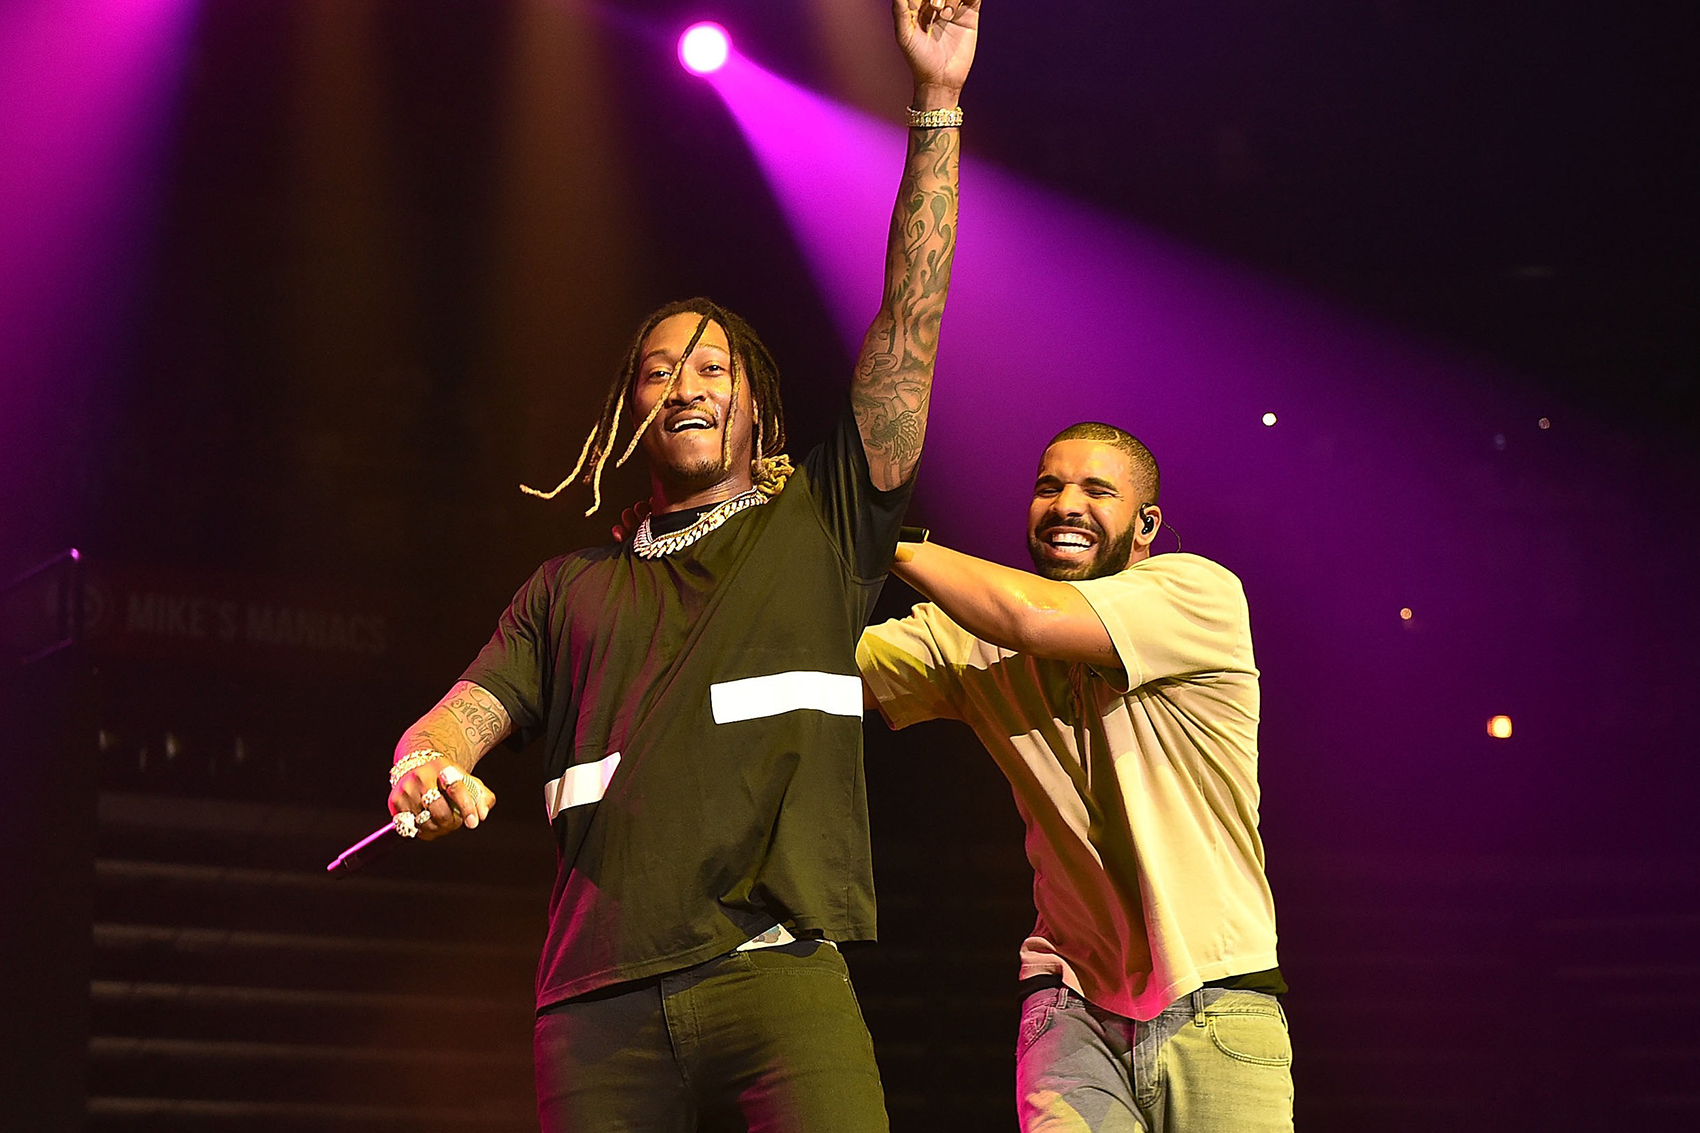 Drake & Future Perform at the Sweet 16 of Floyd Mayweather's Daughter